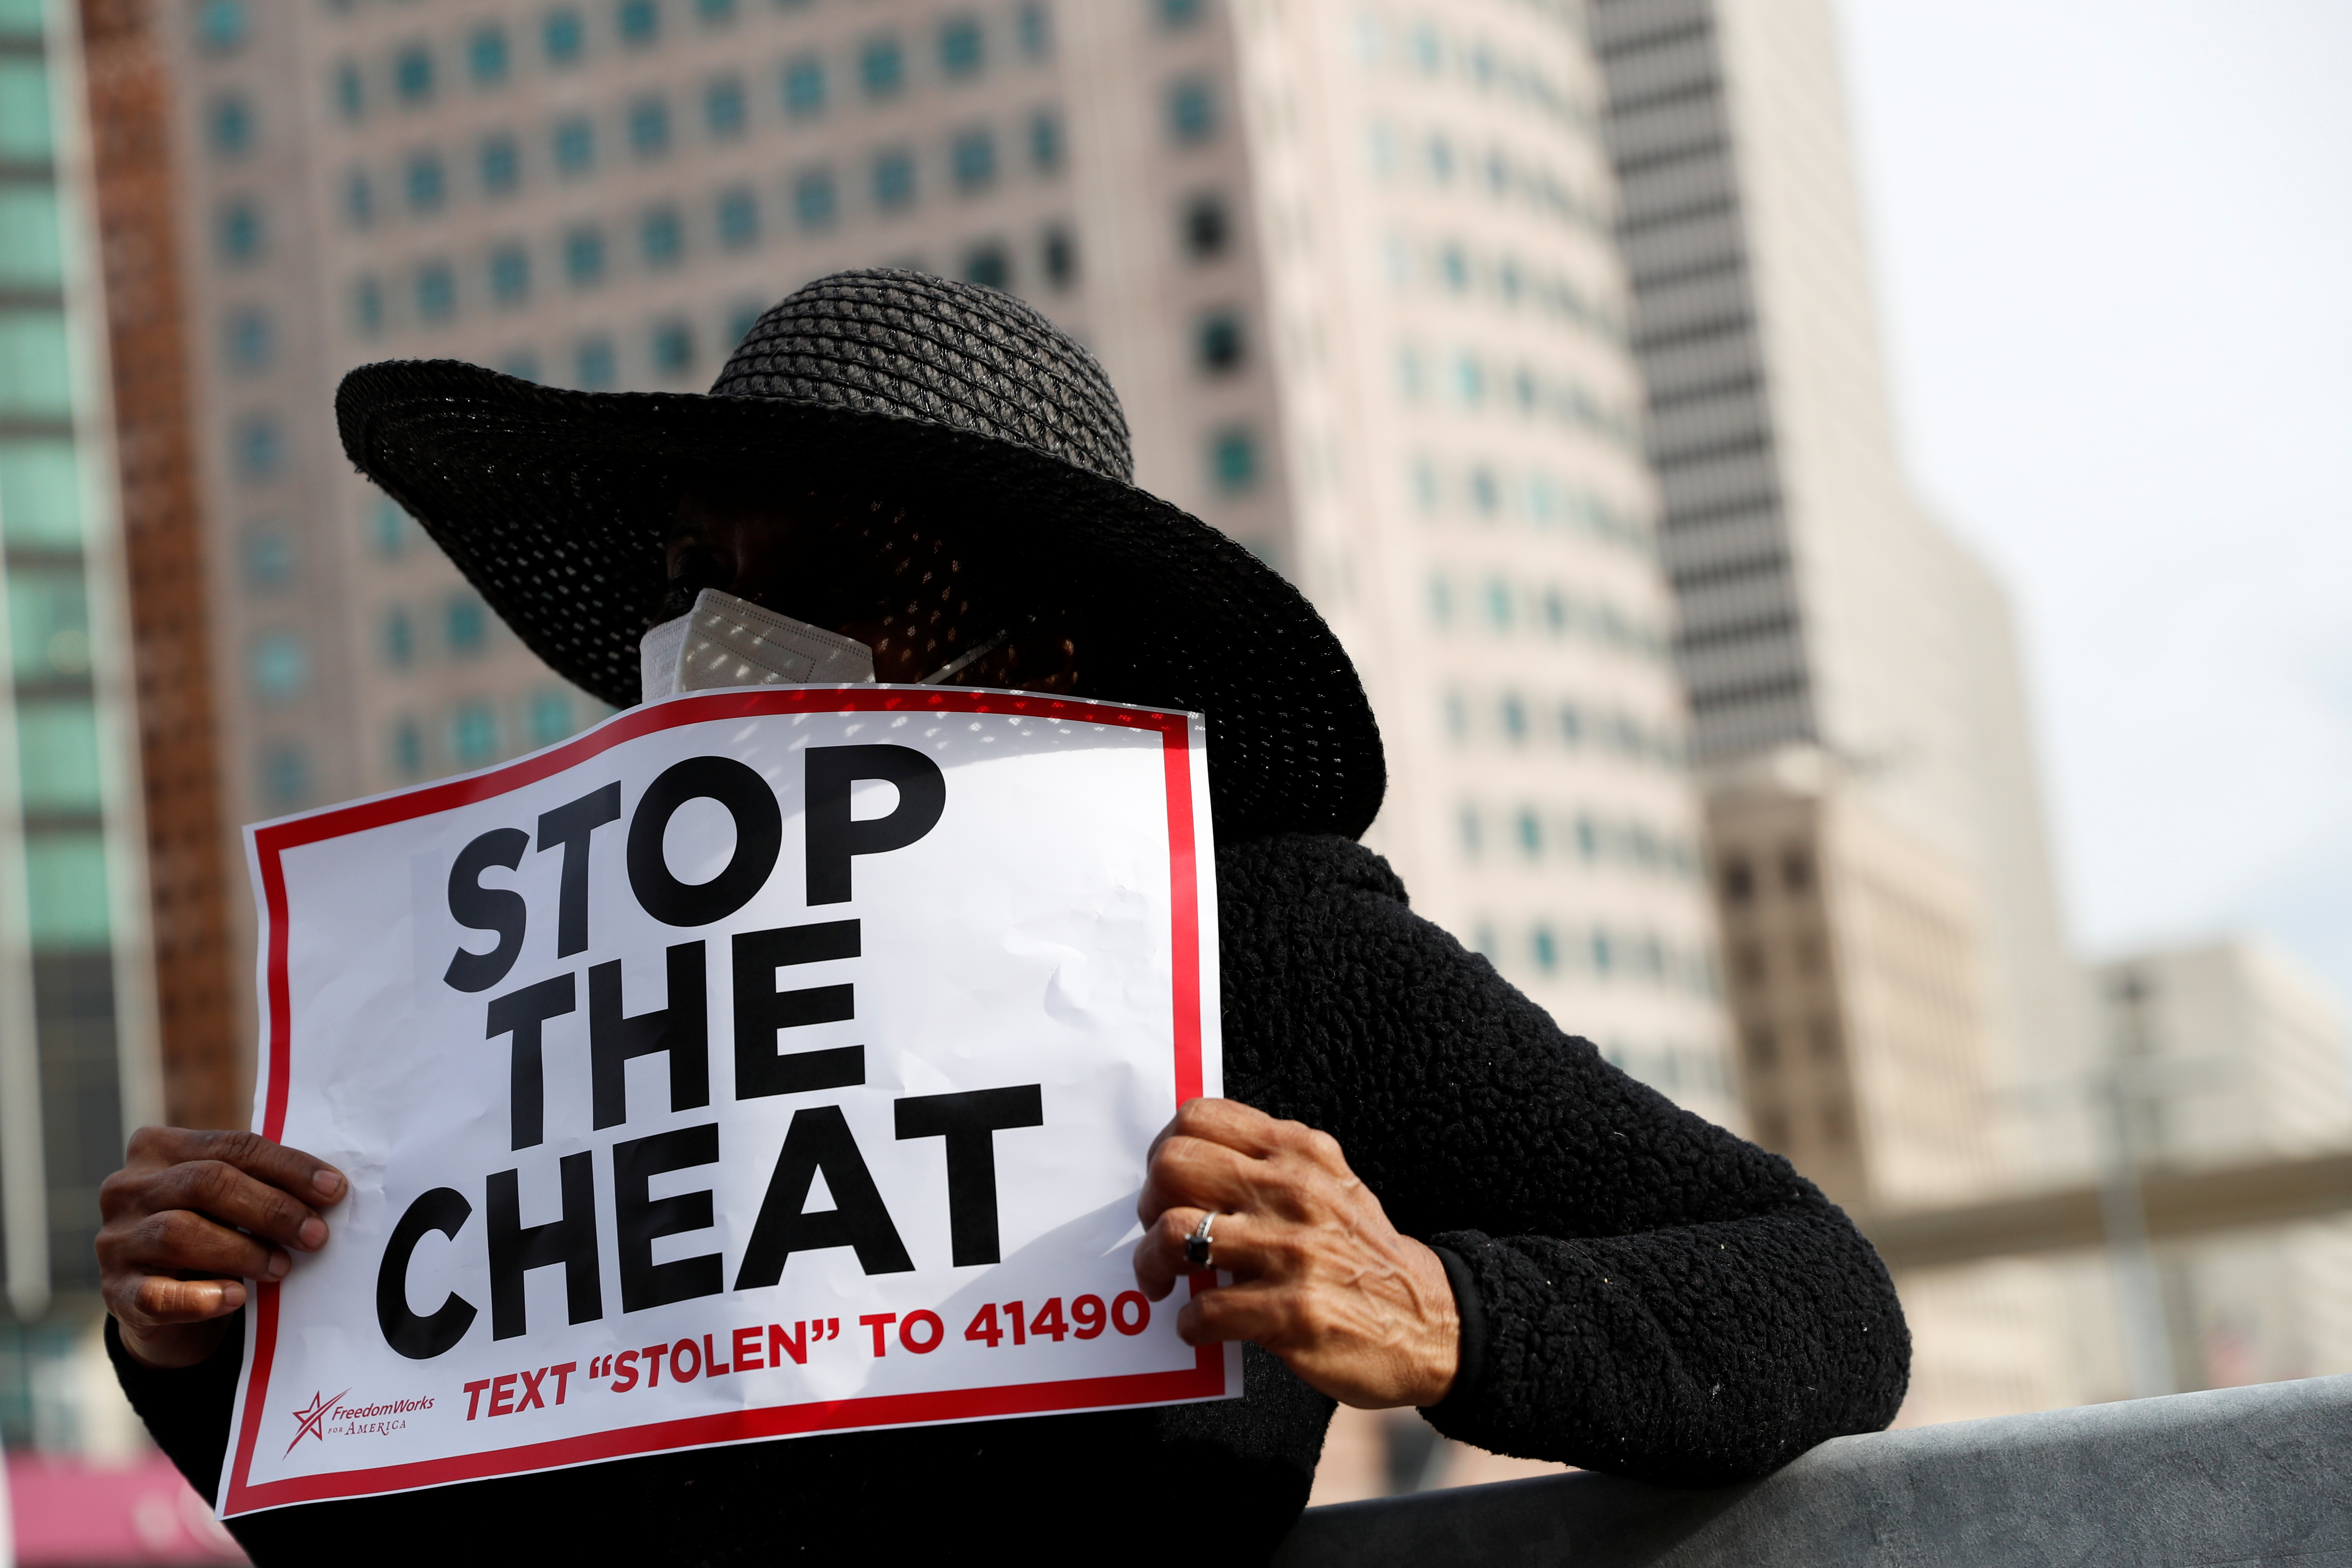 A demonstrator hols a sign as votes continue to be counted following the 2020 U.S. presidential election, in Detroit, Michigan on November 5, 2020.  (Shannon Stapleton/Reuters)